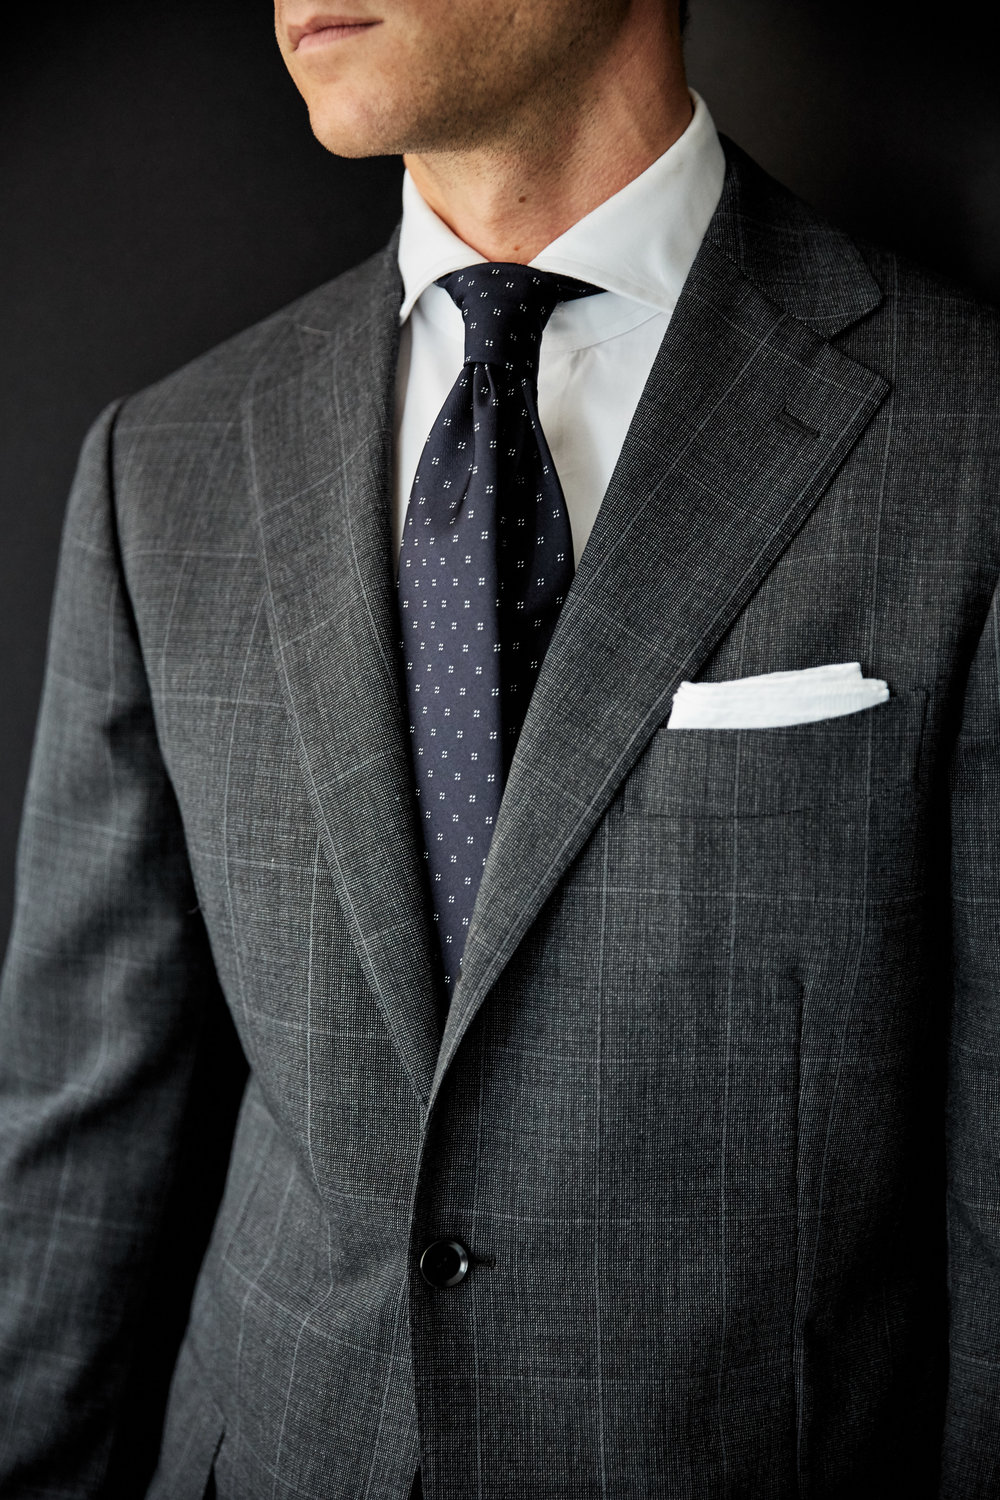 161003_RJ_Nick_DarkGreySuitJacketDetail__I2A5237.jpg